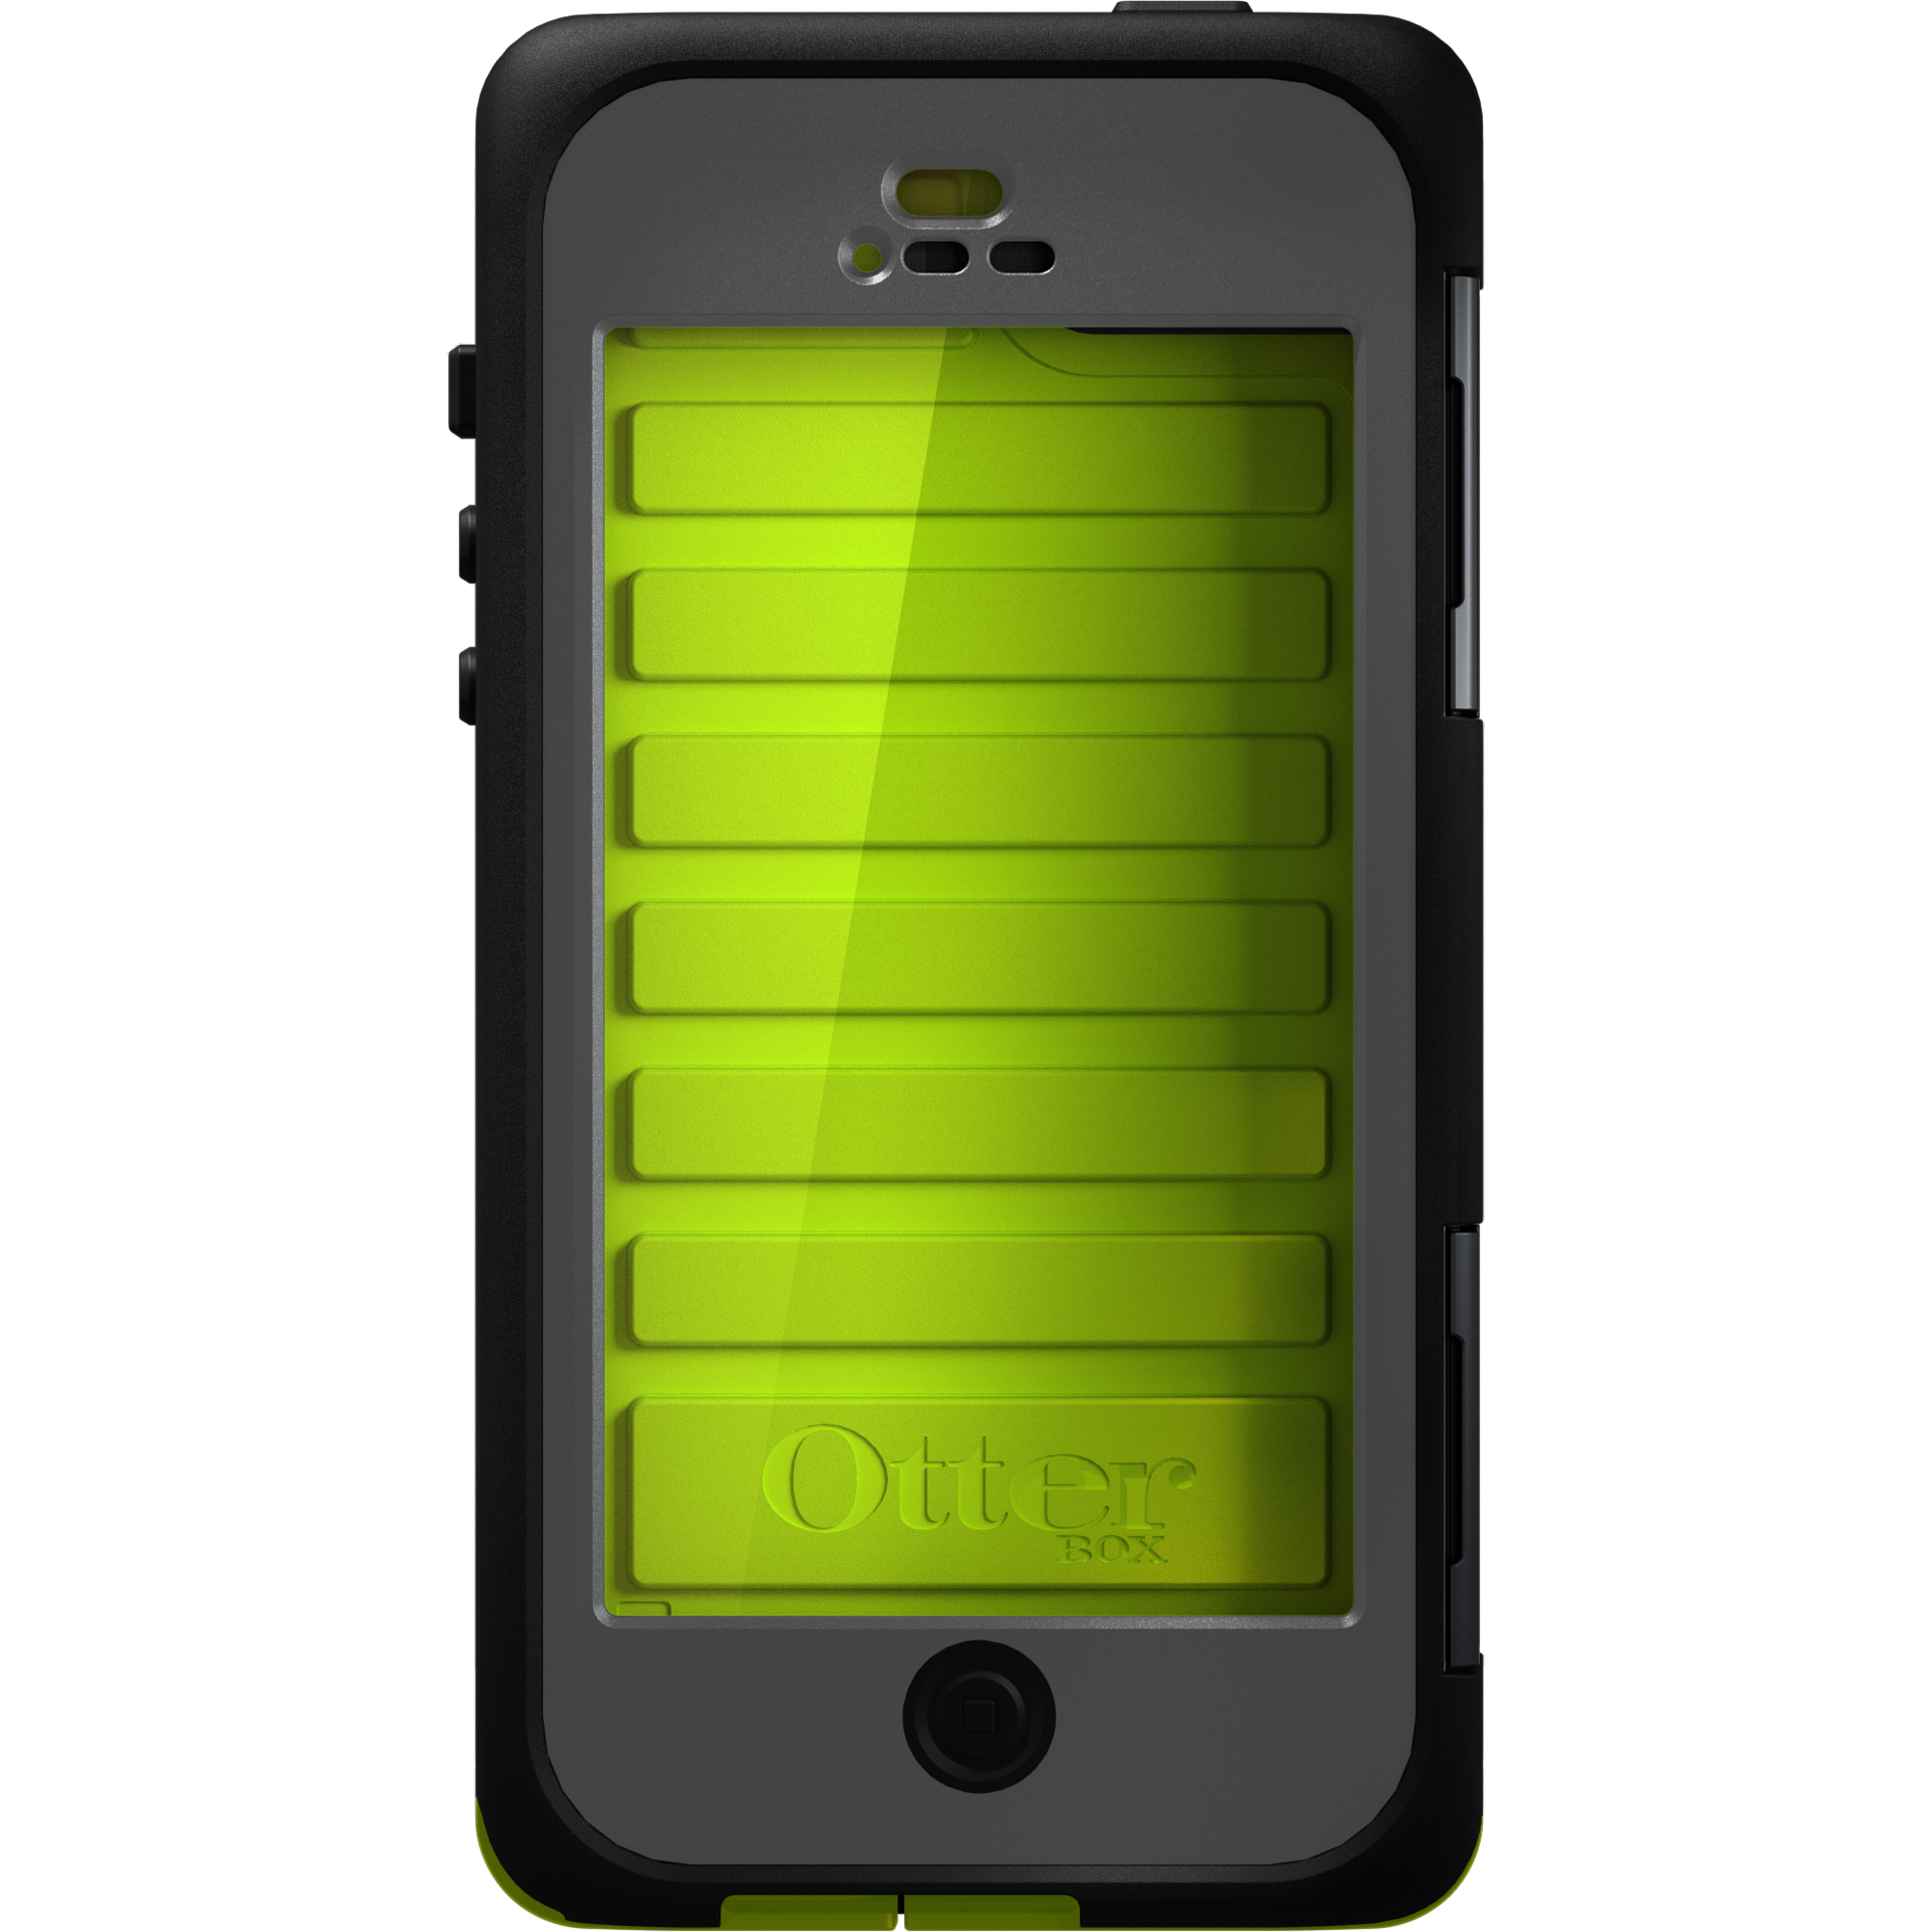 OtterBox iPhone 5 Armor Series Case